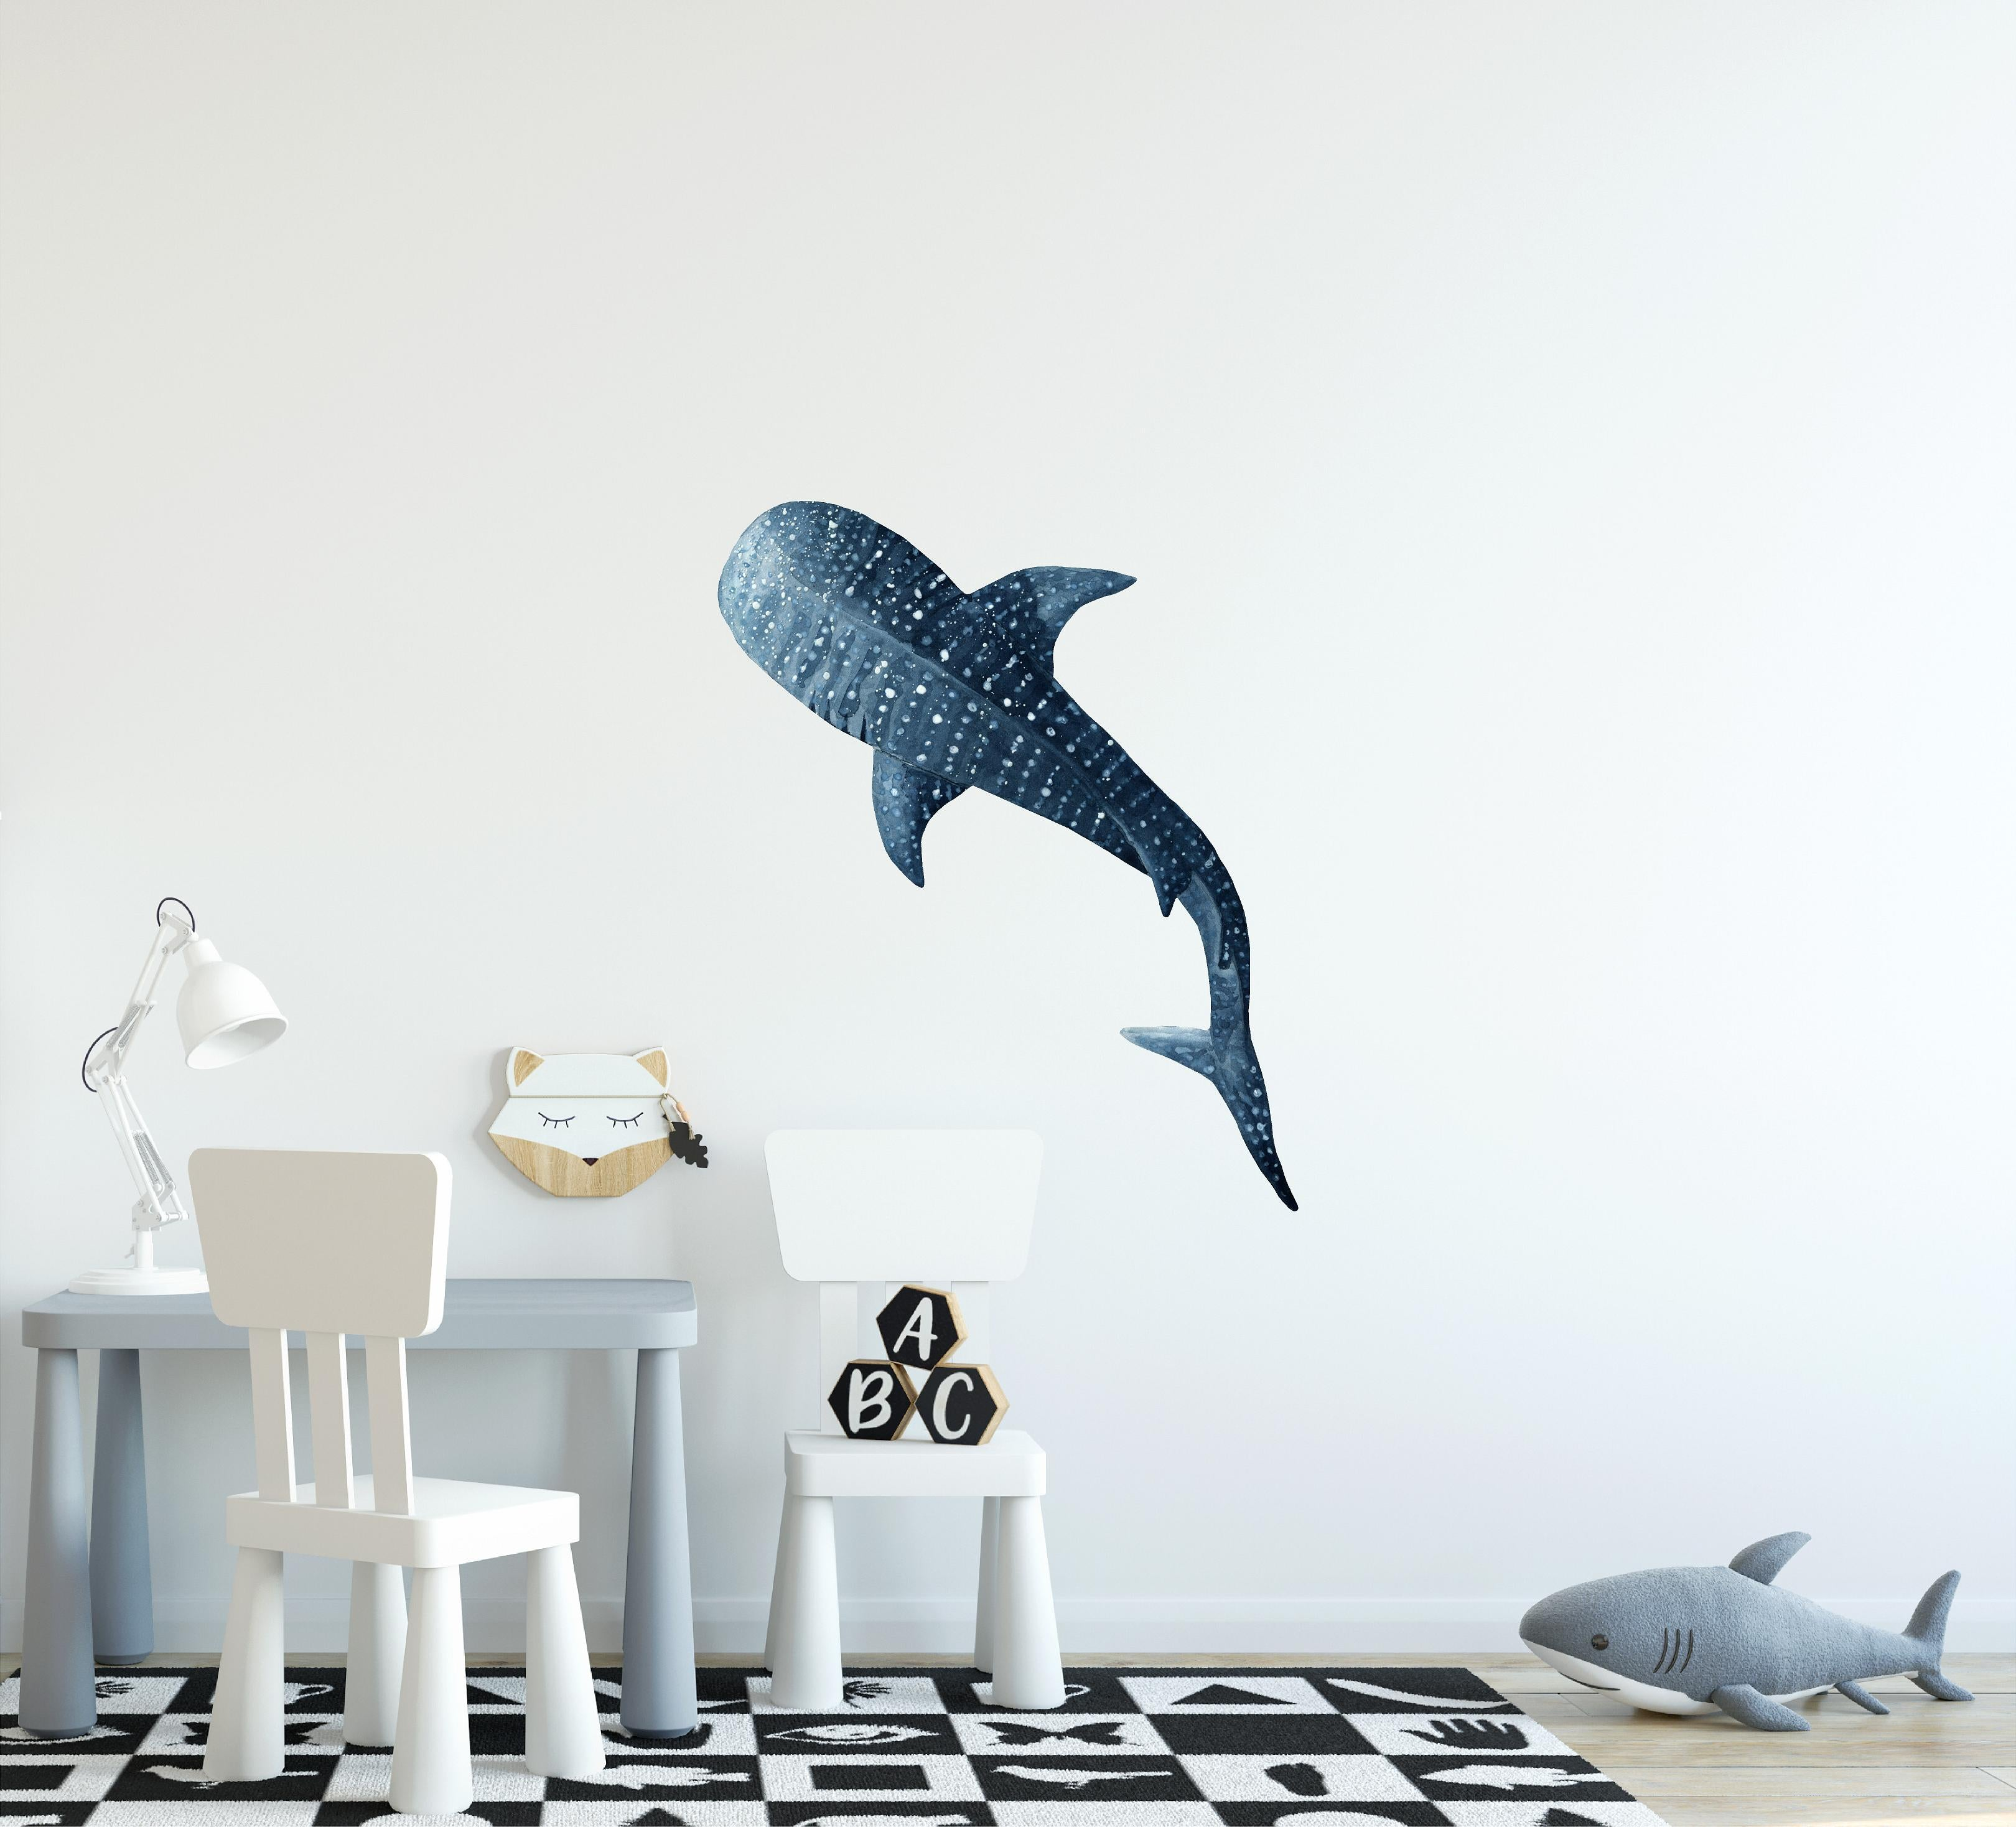 Watercolor Whale Shark #4 Wall Decal Removable Sea Animal Fabric Vinyl Wall Sticker | DecalBaby